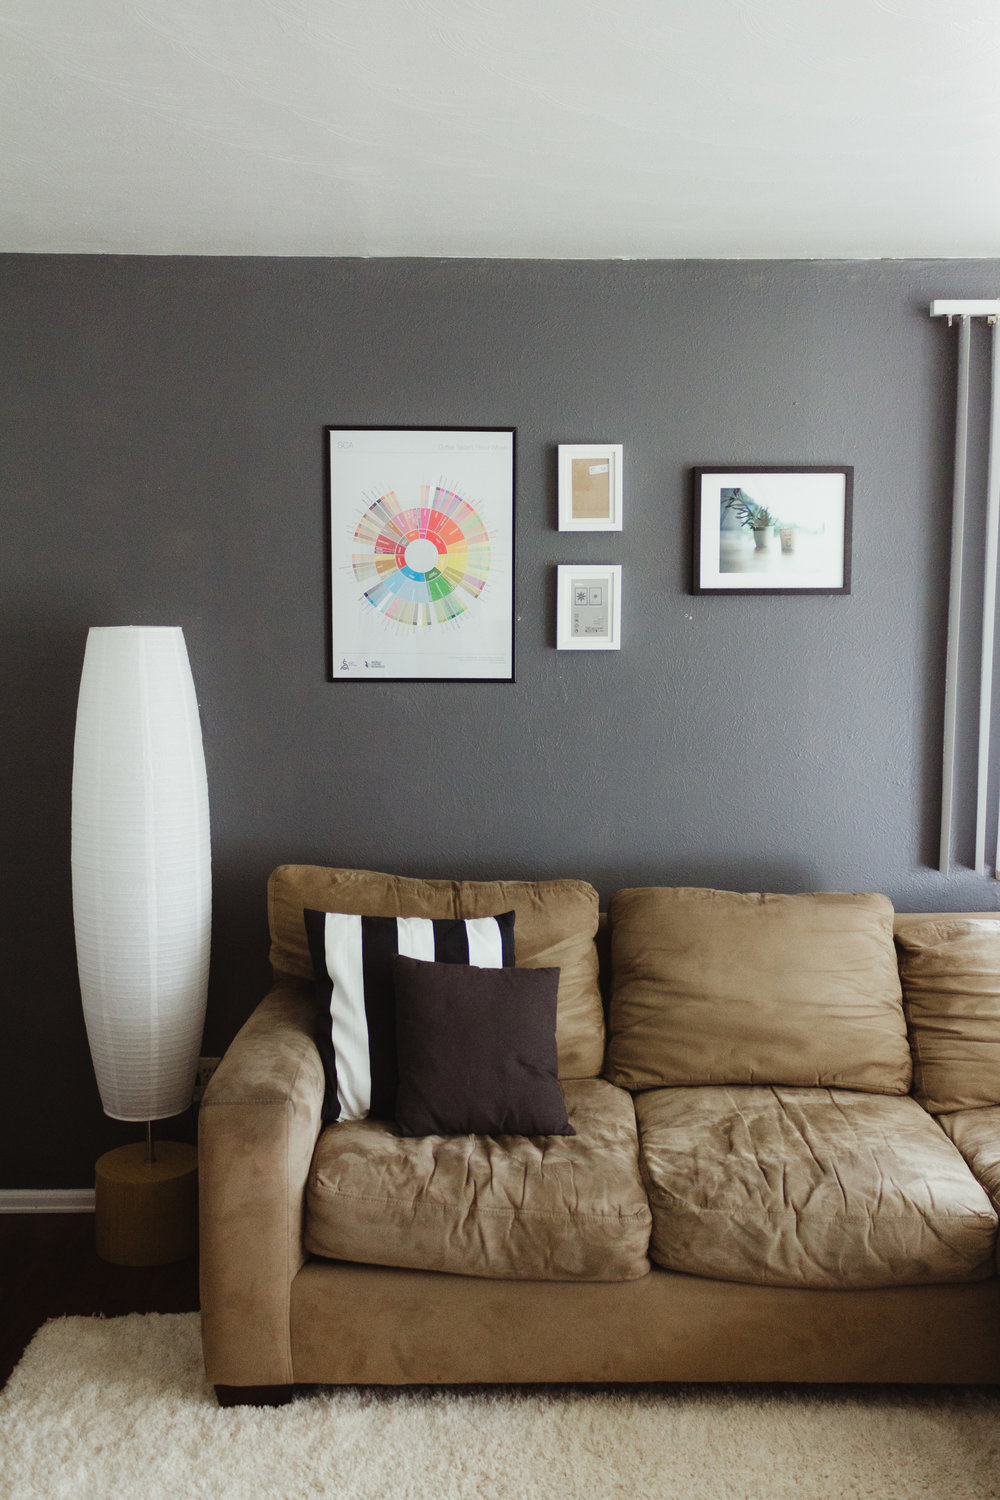 Lamp- Wal Mart  Couch- Lucky find Pillows- IKEA and H&M  Wall Art- SCAA and Christian P Anderson Photography